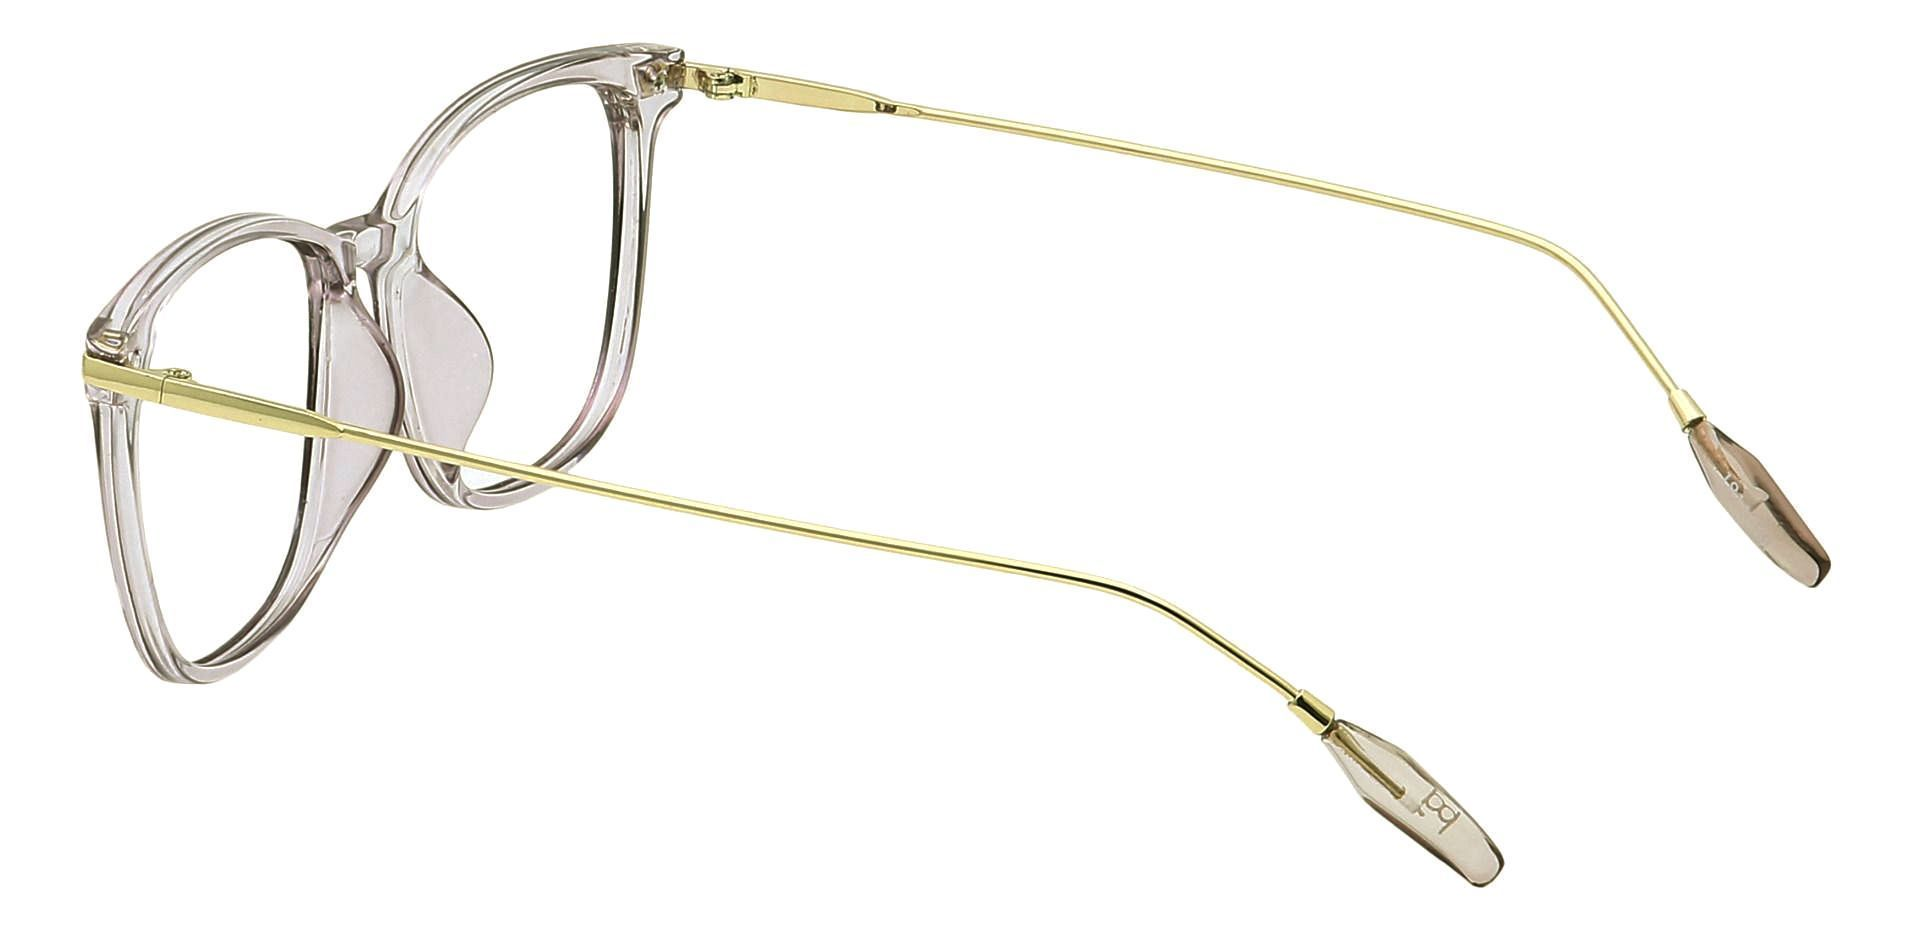 Katie Oval Eyeglasses Frame - The Frame Is Clear With Light Purple